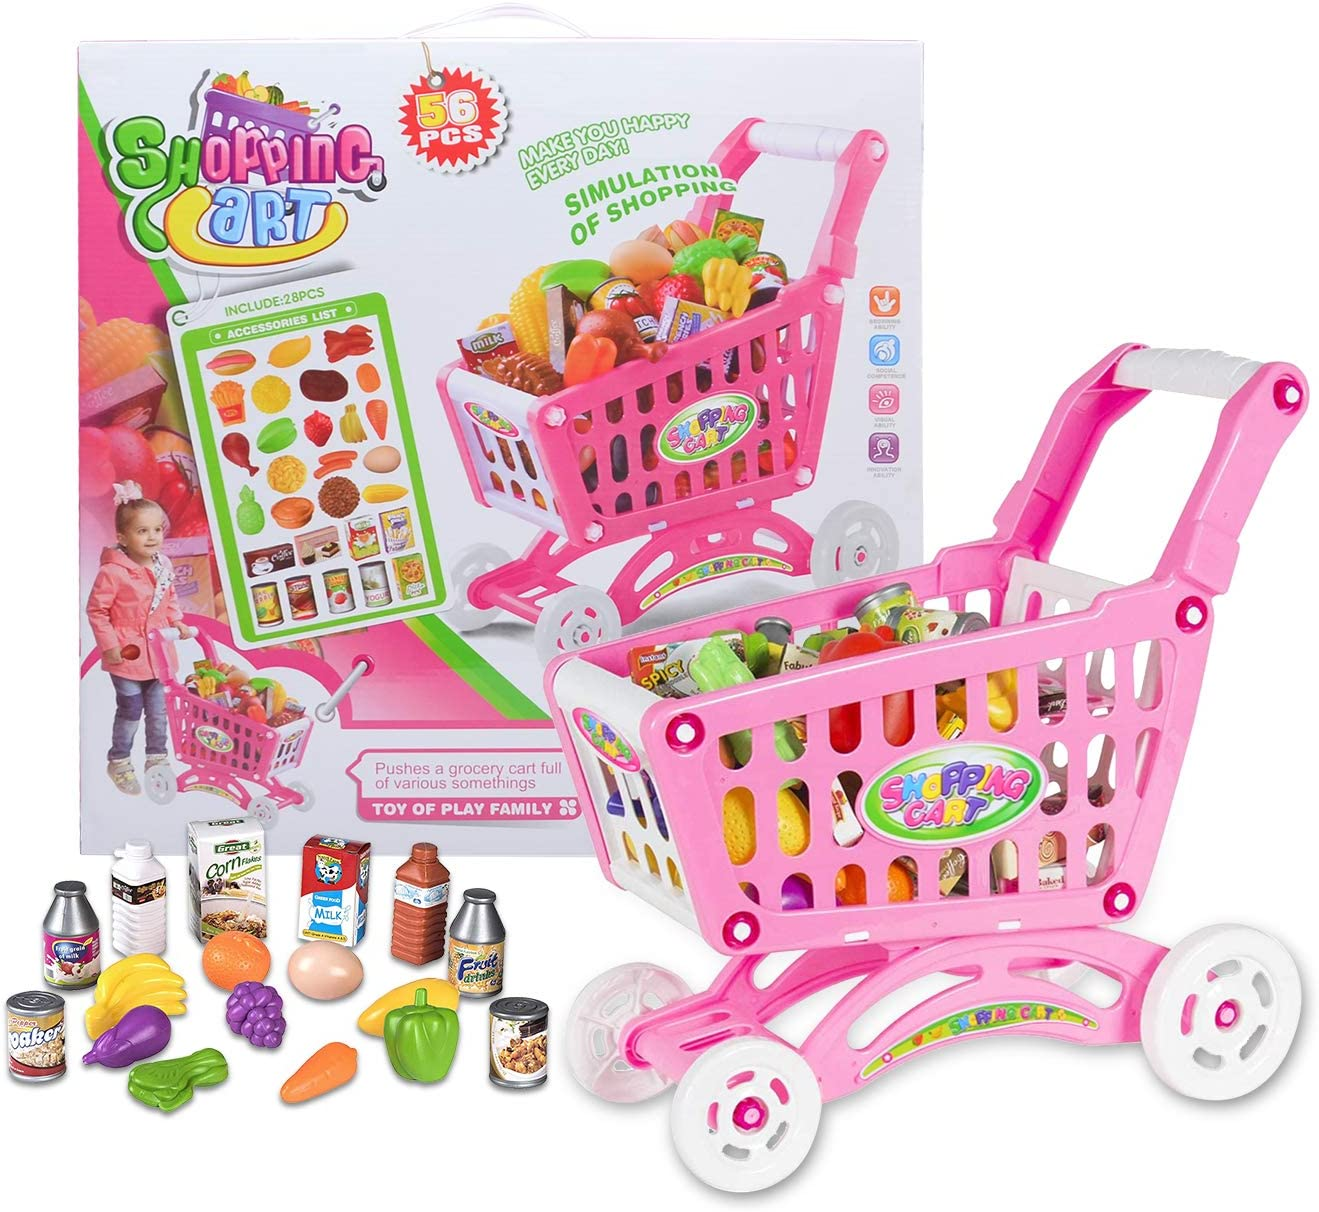 NATSUKAWA Rose Pink Large Shopping Day Grocery Cart – Toy Shopping Cart with Pretend Play Food Items – Realistic Kitchen Accessories for Kids Ages 3 and Up ( 56Pieces)